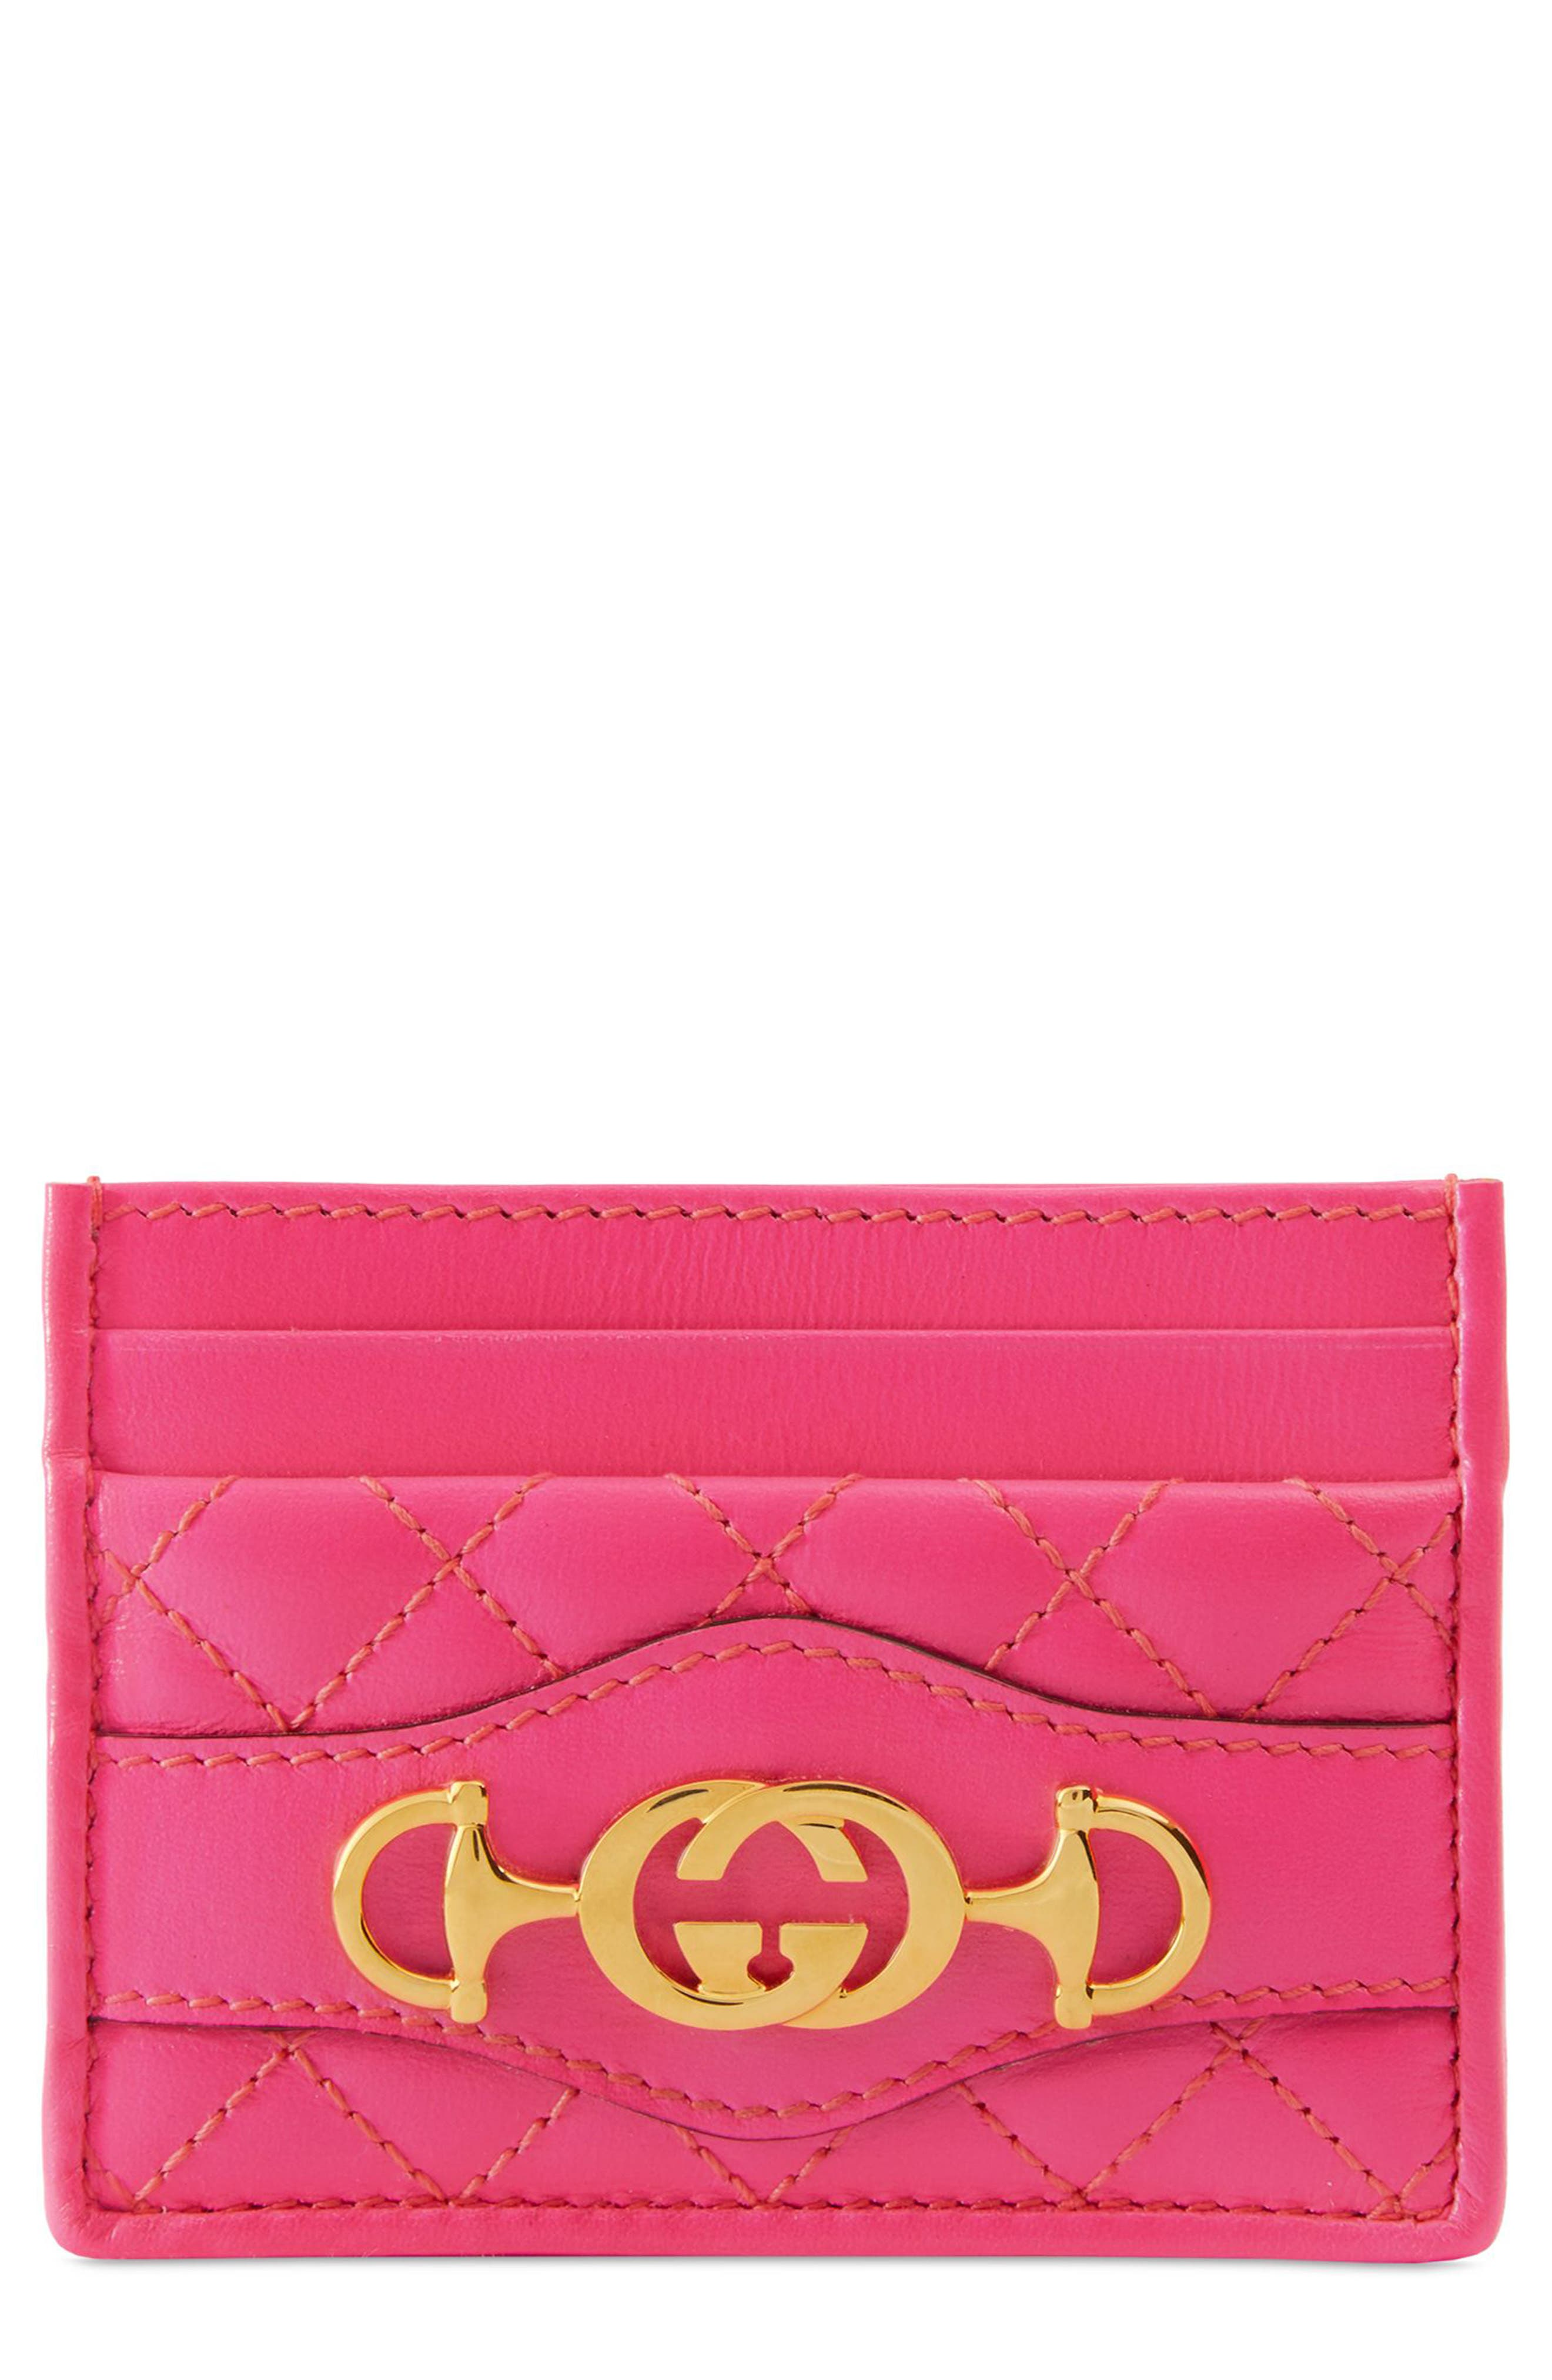 Quilted Leather Card Case,                             Main thumbnail 1, color,                             670